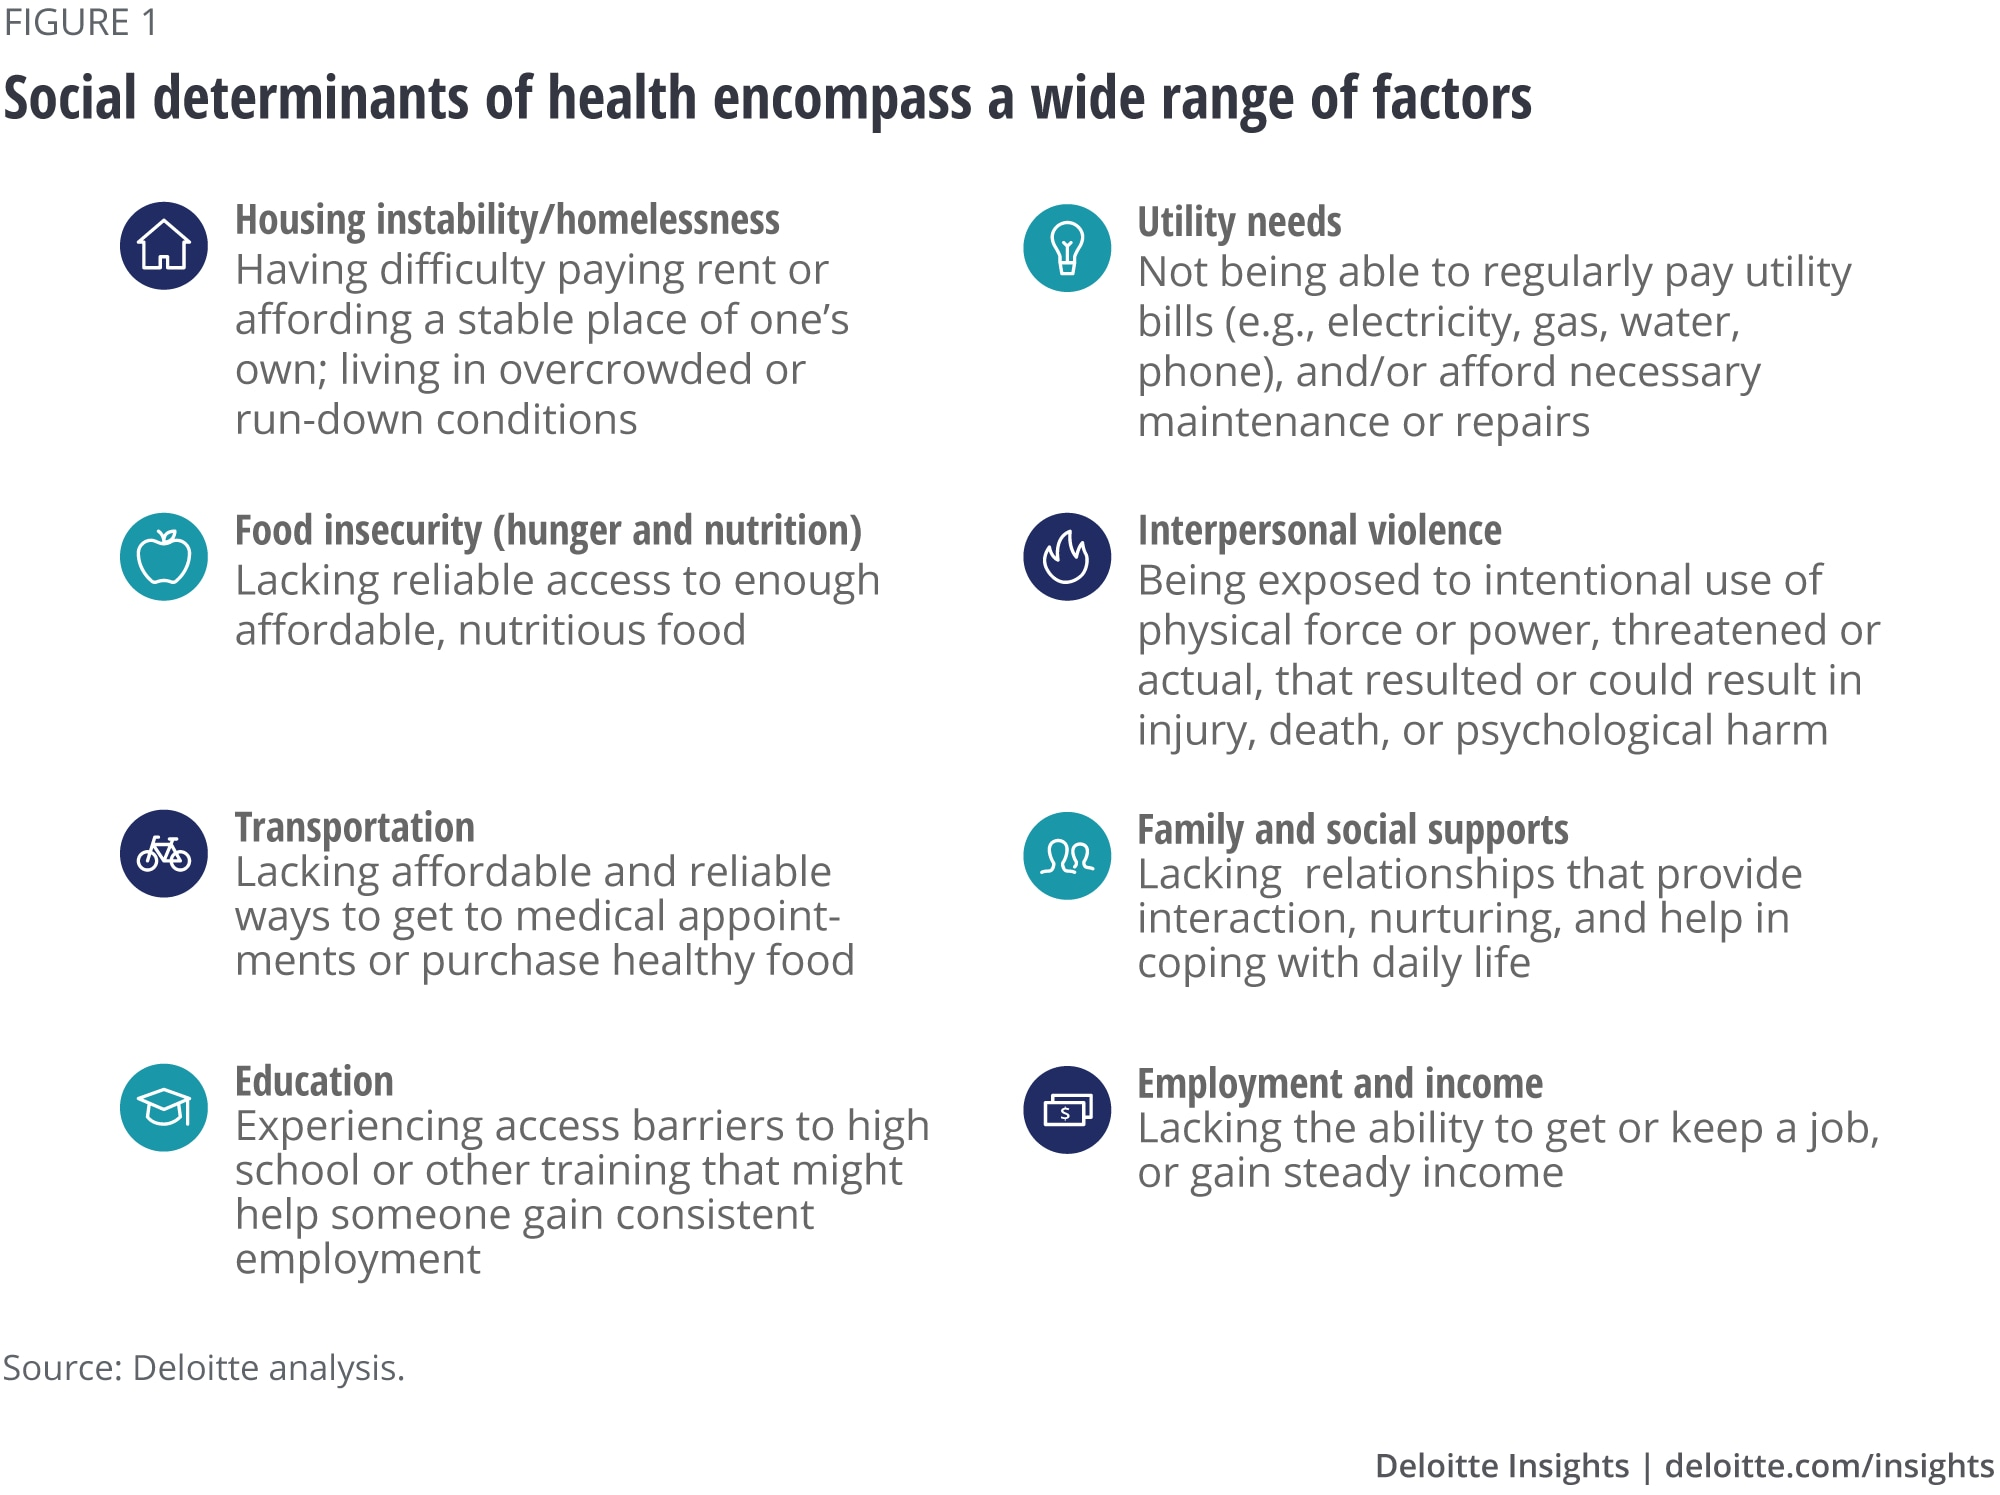 Social determinants of health encompass a wide range of factors